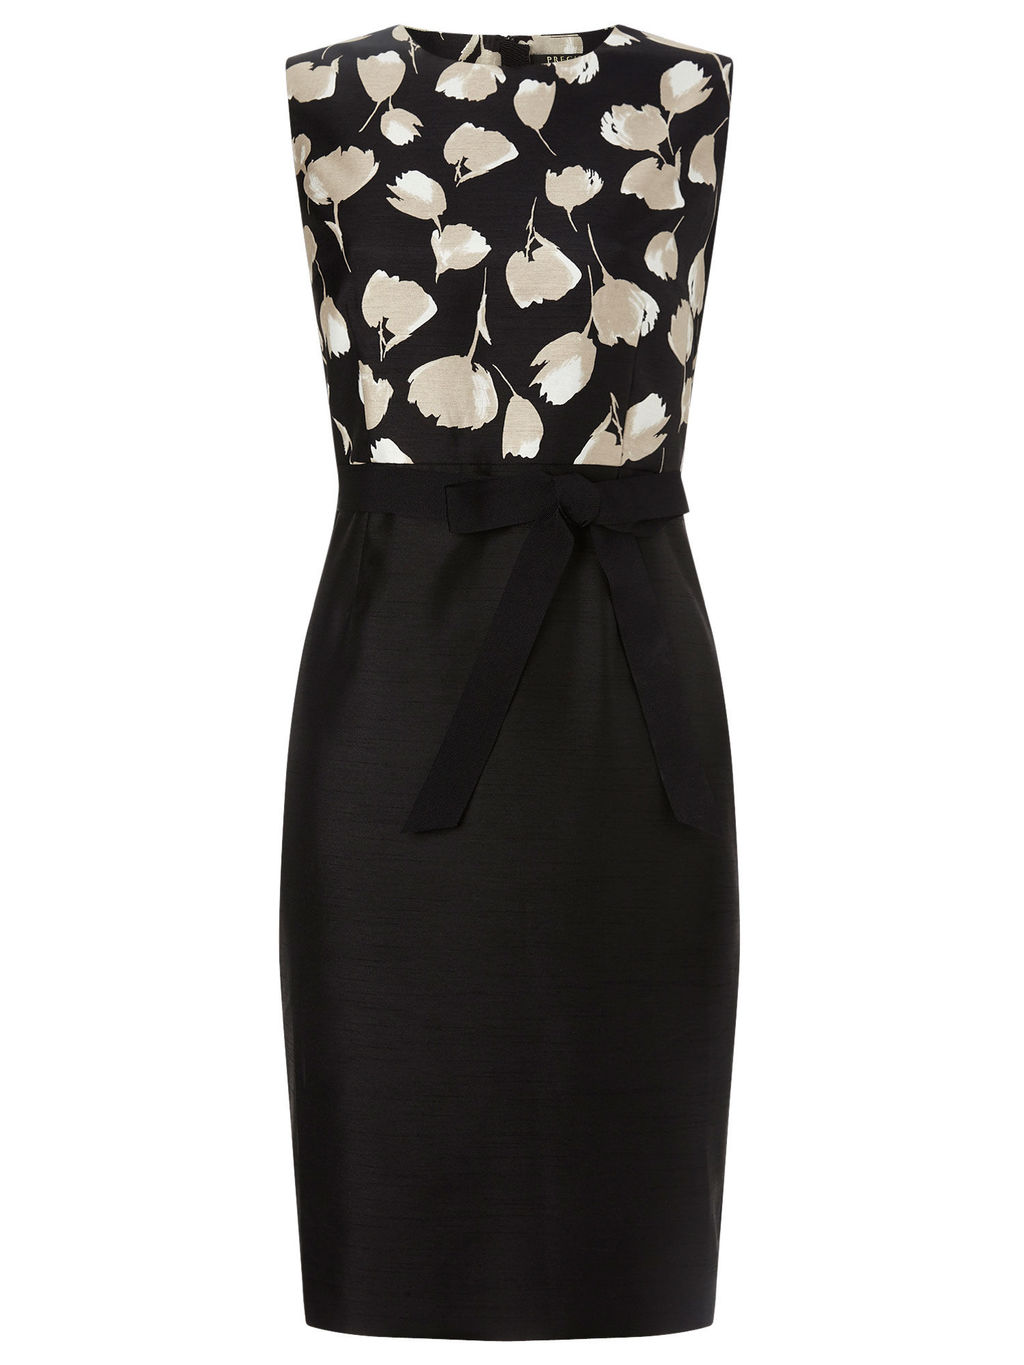 Tulip Bodice Dress - style: shift; length: below the knee; fit: tailored/fitted; pattern: plain; sleeve style: sleeveless; waist detail: belted waist/tie at waist/drawstring; secondary colour: ivory/cream; predominant colour: black; fibres: polyester/polyamide - 100%; occasions: occasion; neckline: crew; sleeve length: sleeveless; trends: monochrome; pattern type: fabric; texture group: other - light to midweight; season: s/s 2016; wardrobe: event